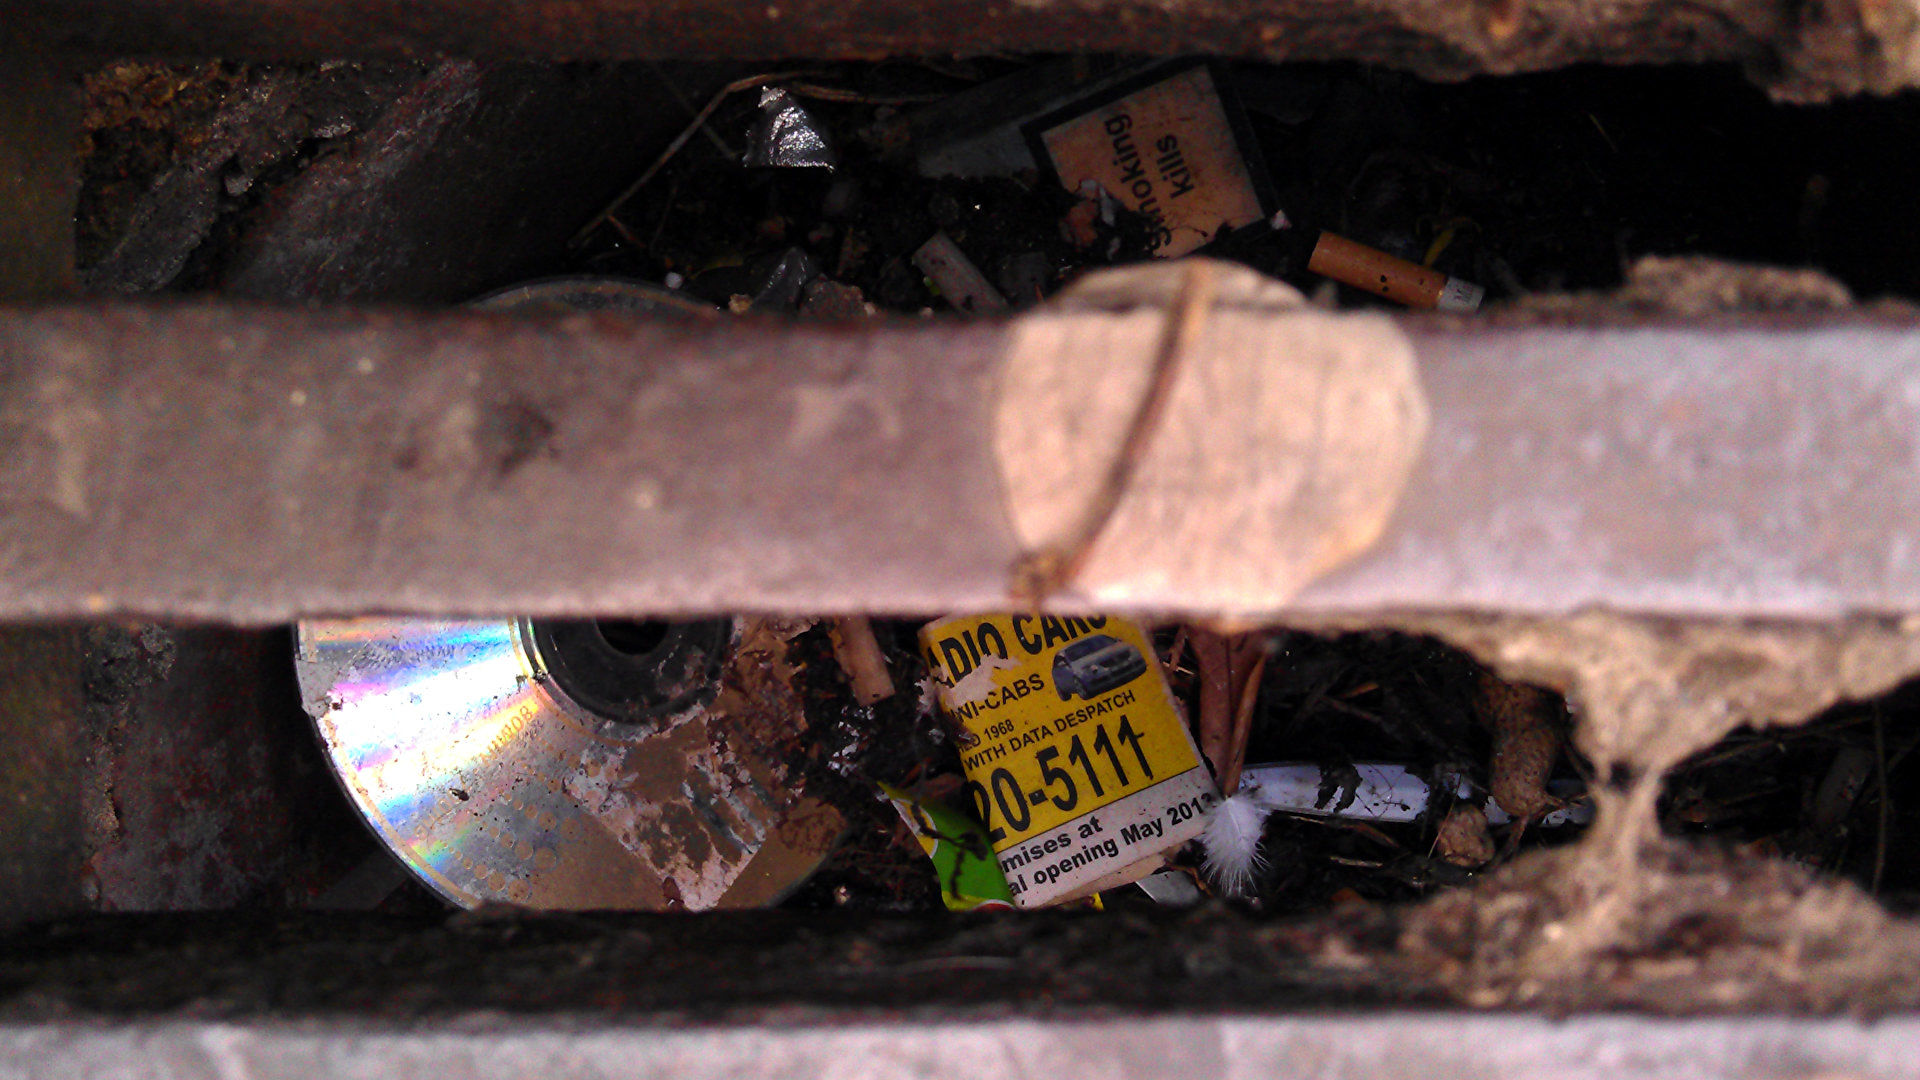 I kinda miss finding random CD-Rs in the gutter